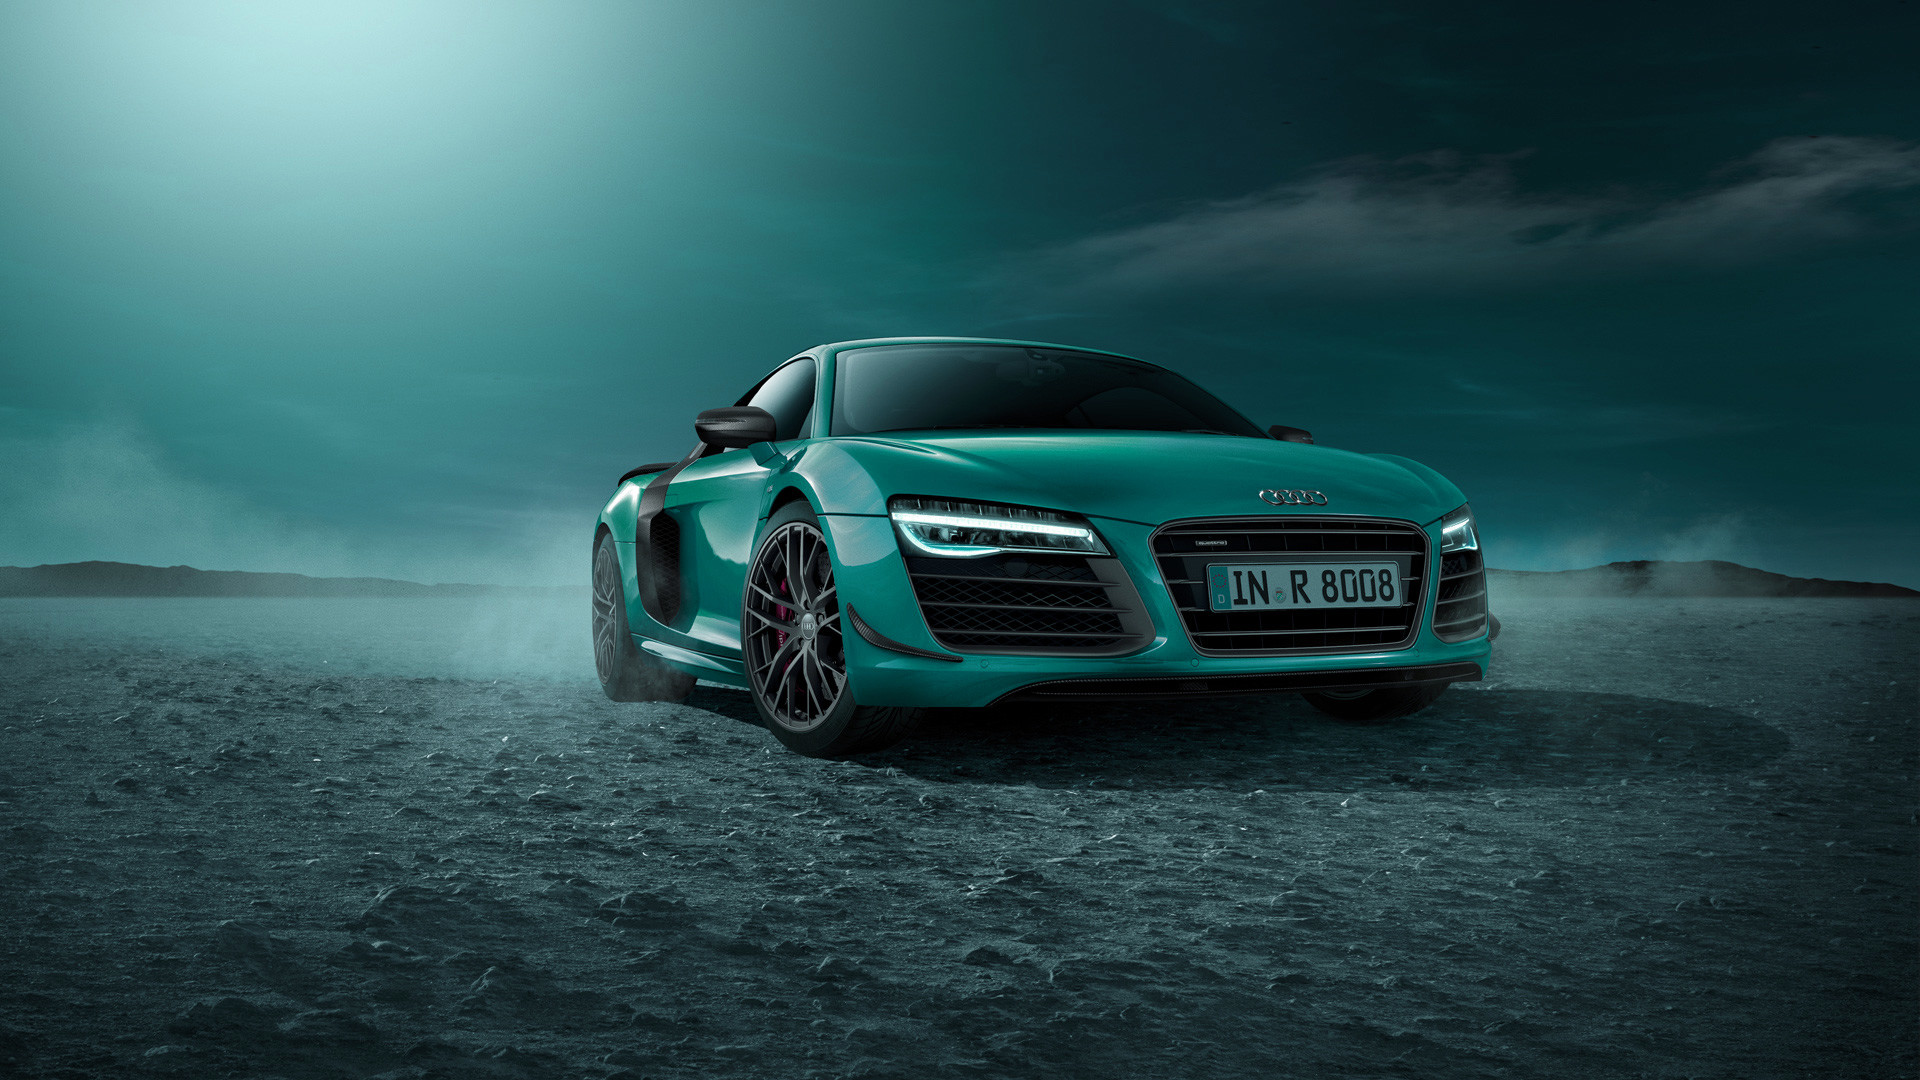 Hd widescreen wallpapers 1080p 78 background pictures - Car hd wallpapers 1080p download ...